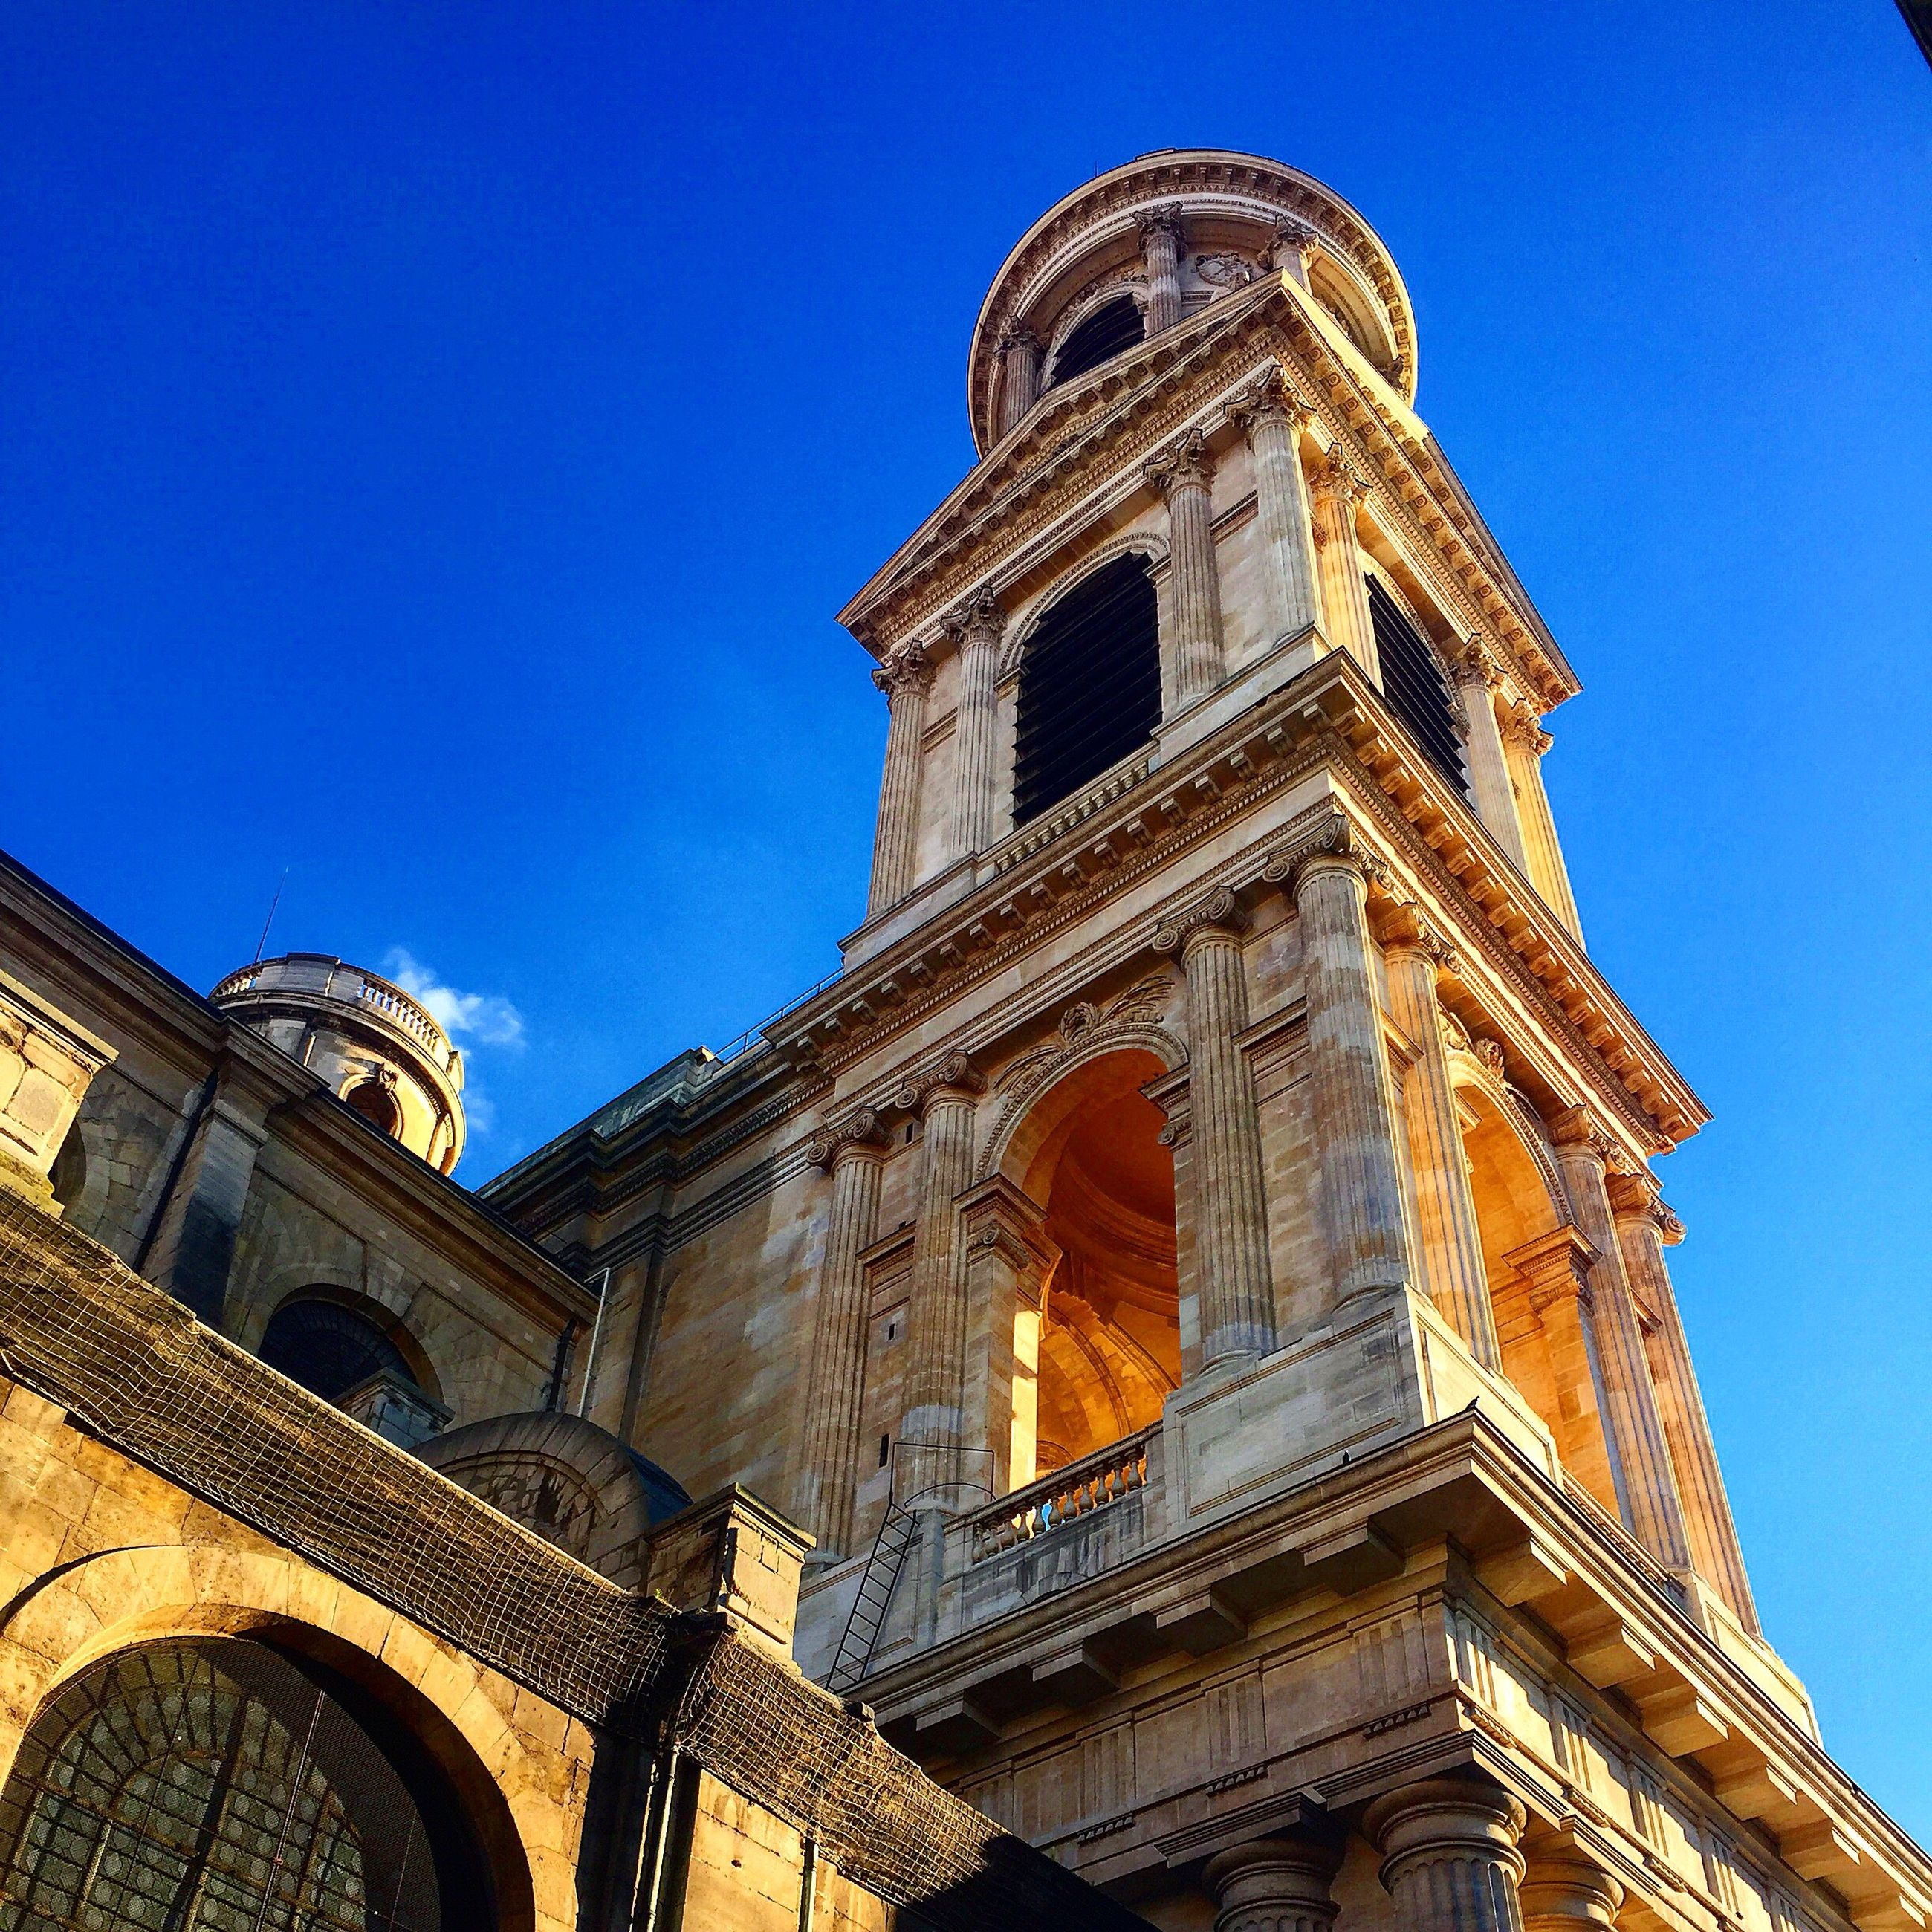 architecture, low angle view, building exterior, built structure, blue, clear sky, place of worship, religion, church, tower, high section, tall - high, day, no people, travel destinations, outdoors, sky, tourism